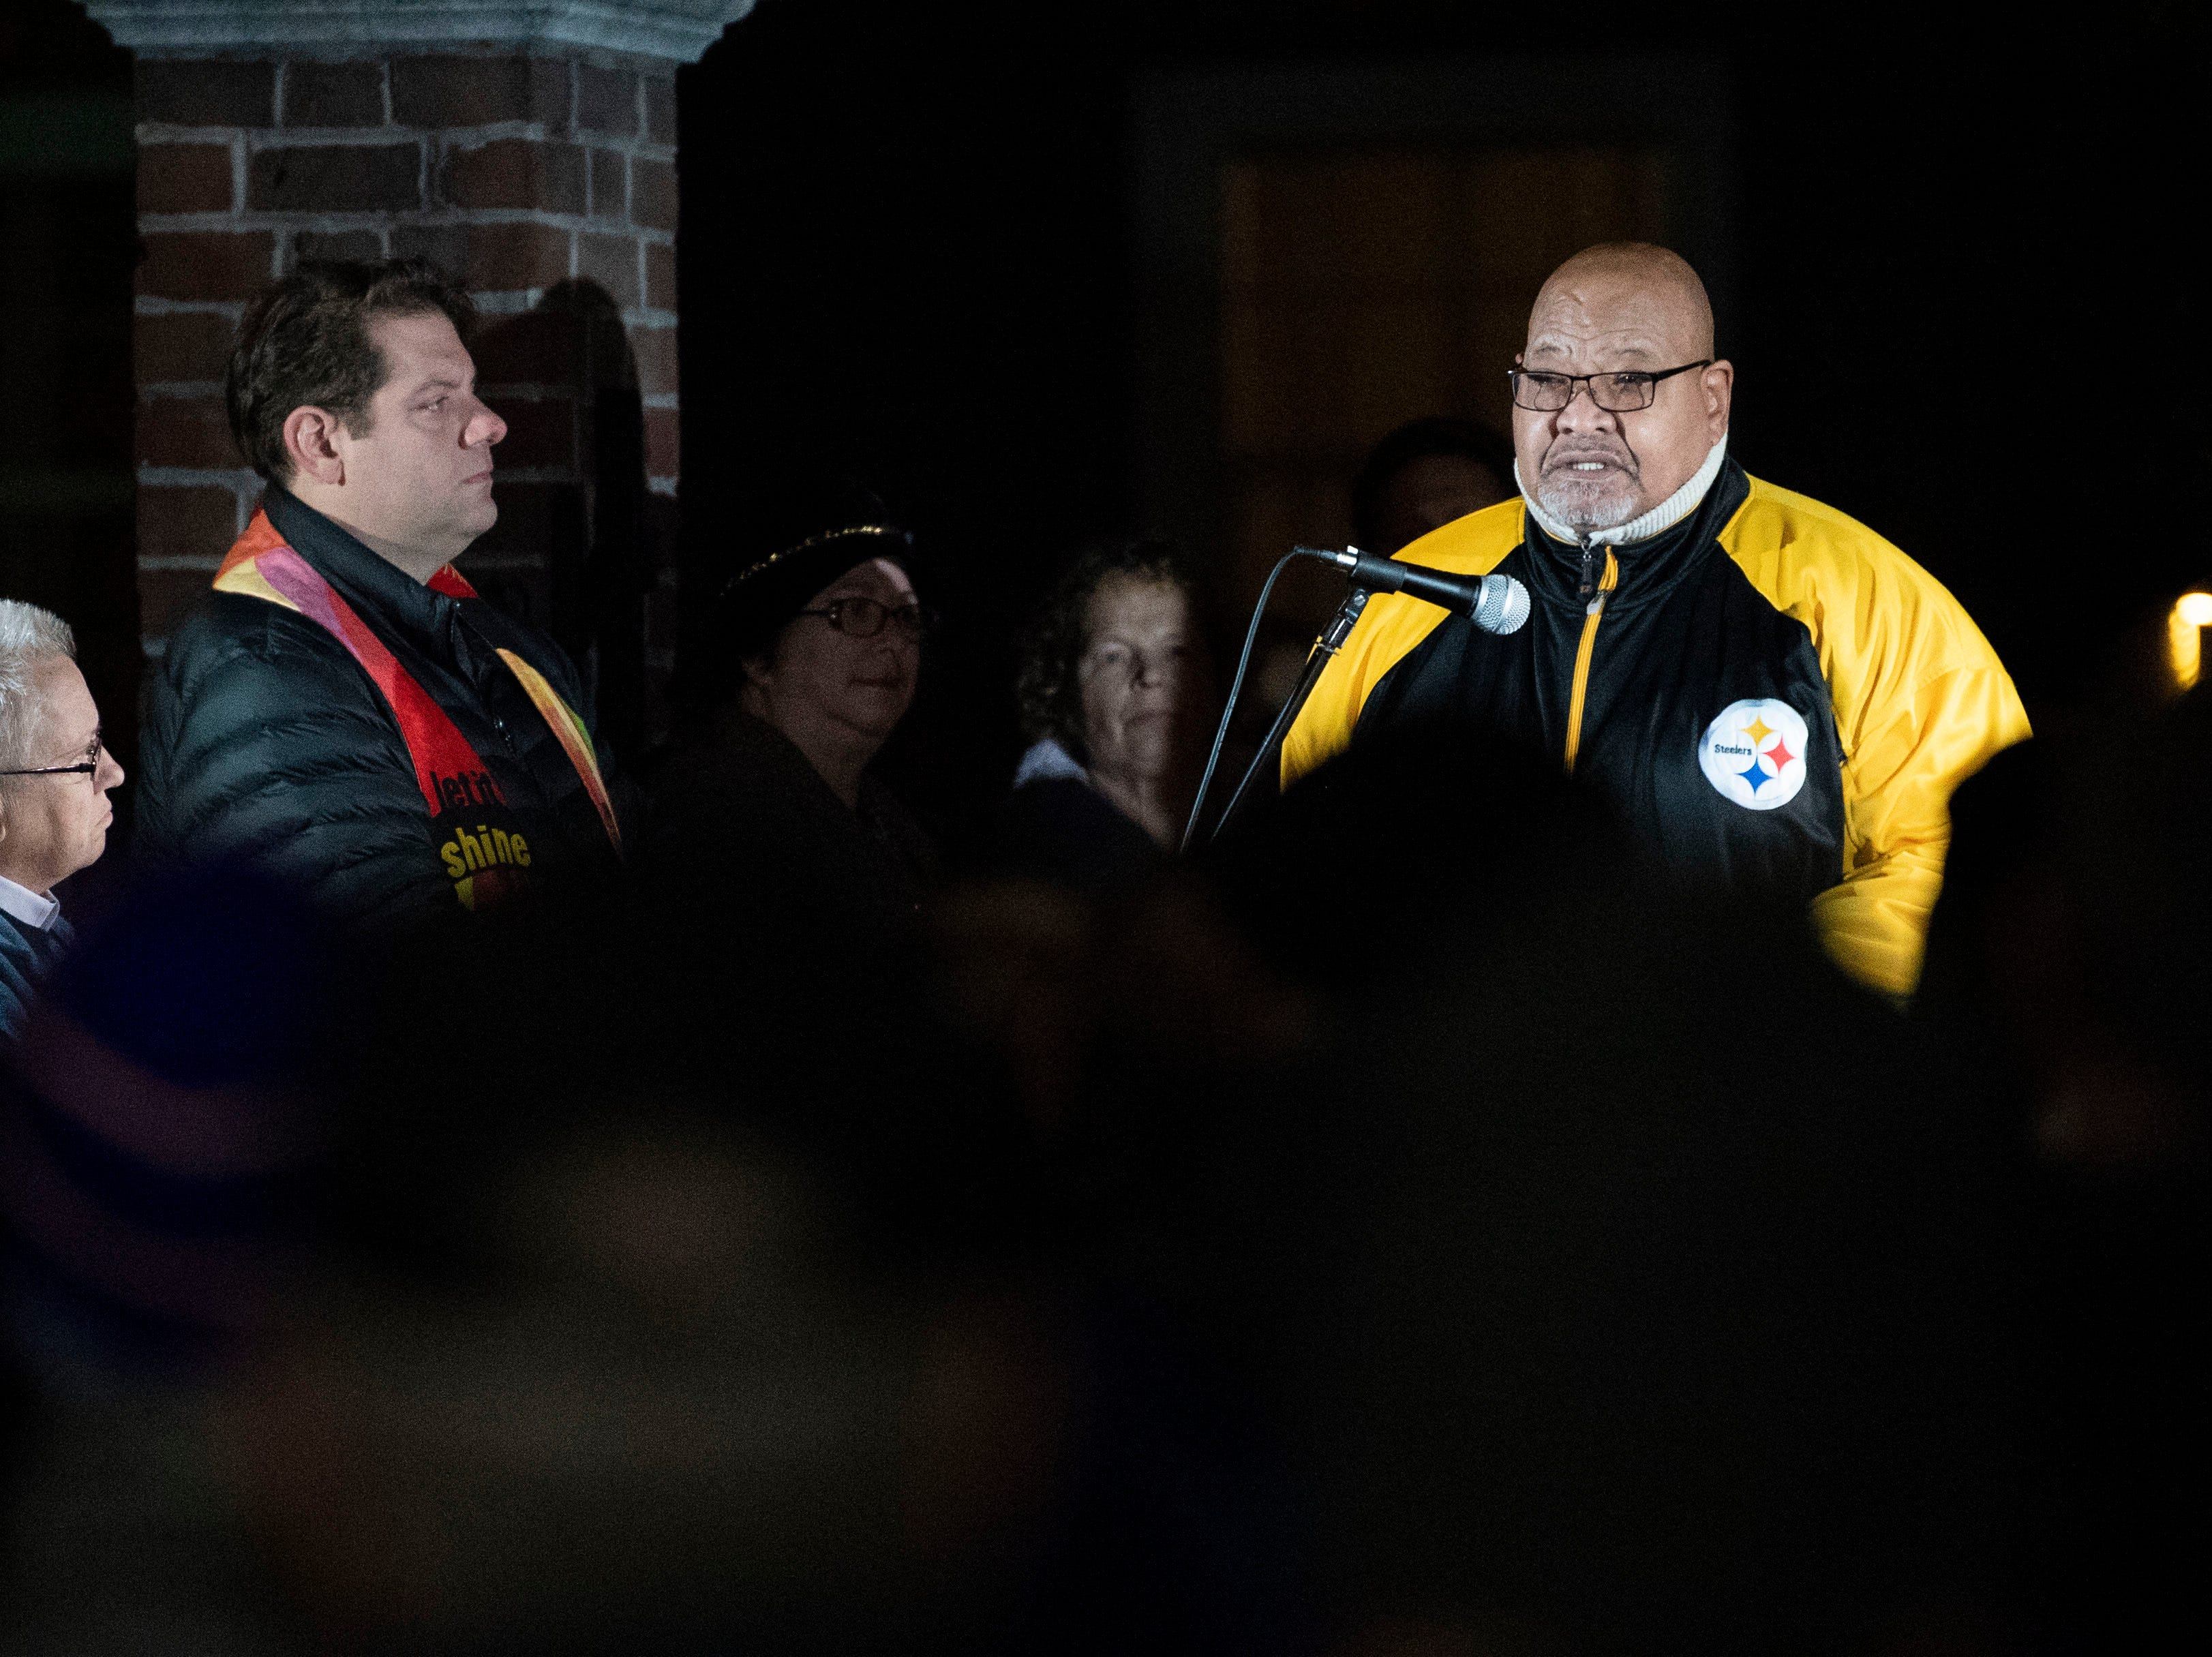 Pastor Bill Kerney, the president of the Black Ministers Association, speaks during a candlelight vigil in front of city hall on Monday, Oct. 29, 2018. Hundreds of people gathered for the 'York Vigil against Hate,' mourning the 11 dead from the weekend shooting at Tree of Life synagogue in Pittsburgh.